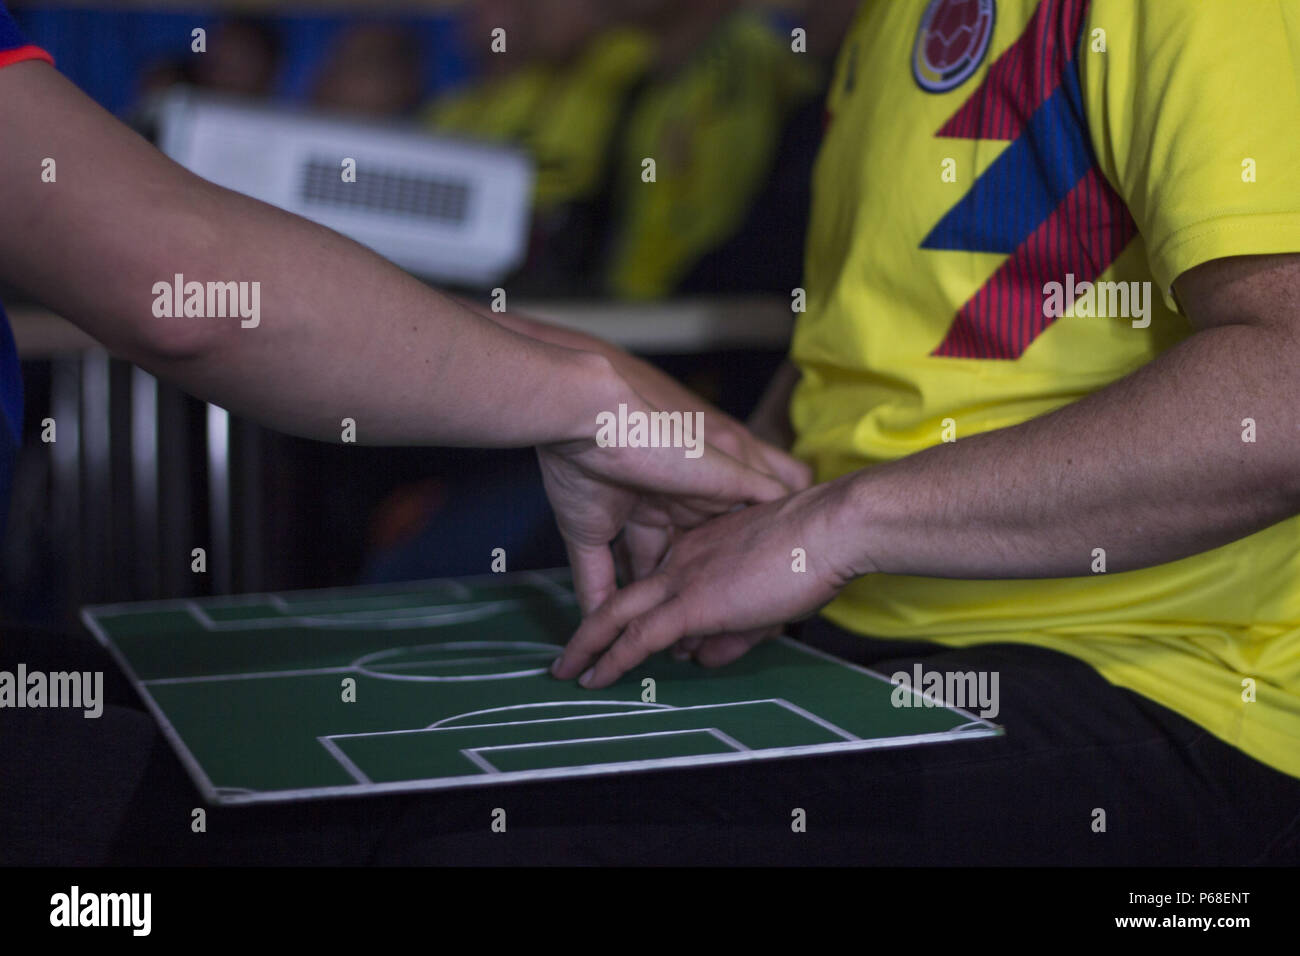 Bogota, Colombia. 20th July, 2016. Cesar narrates the game to his friend Jose through sign language the parity of Colombia against Senegal that won the Colombian team Credit: Daniel AndréS GarzóN Herazo/ZUMA Wire/Alamy Live News - Stock Image